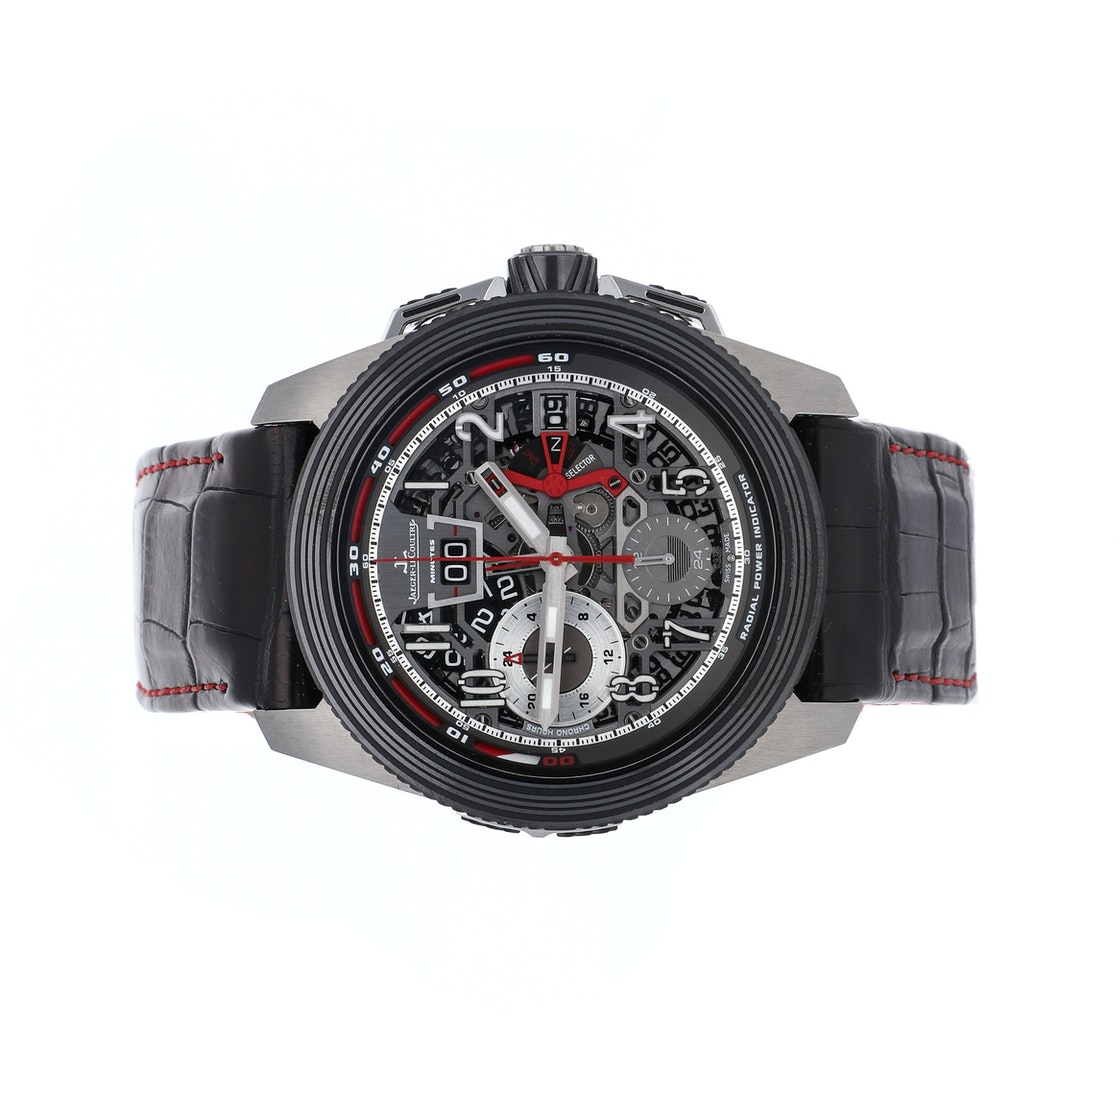 Jaeger-LeCoultre Master Compressor Extreme Lab 2 Limited Edition Q203T540